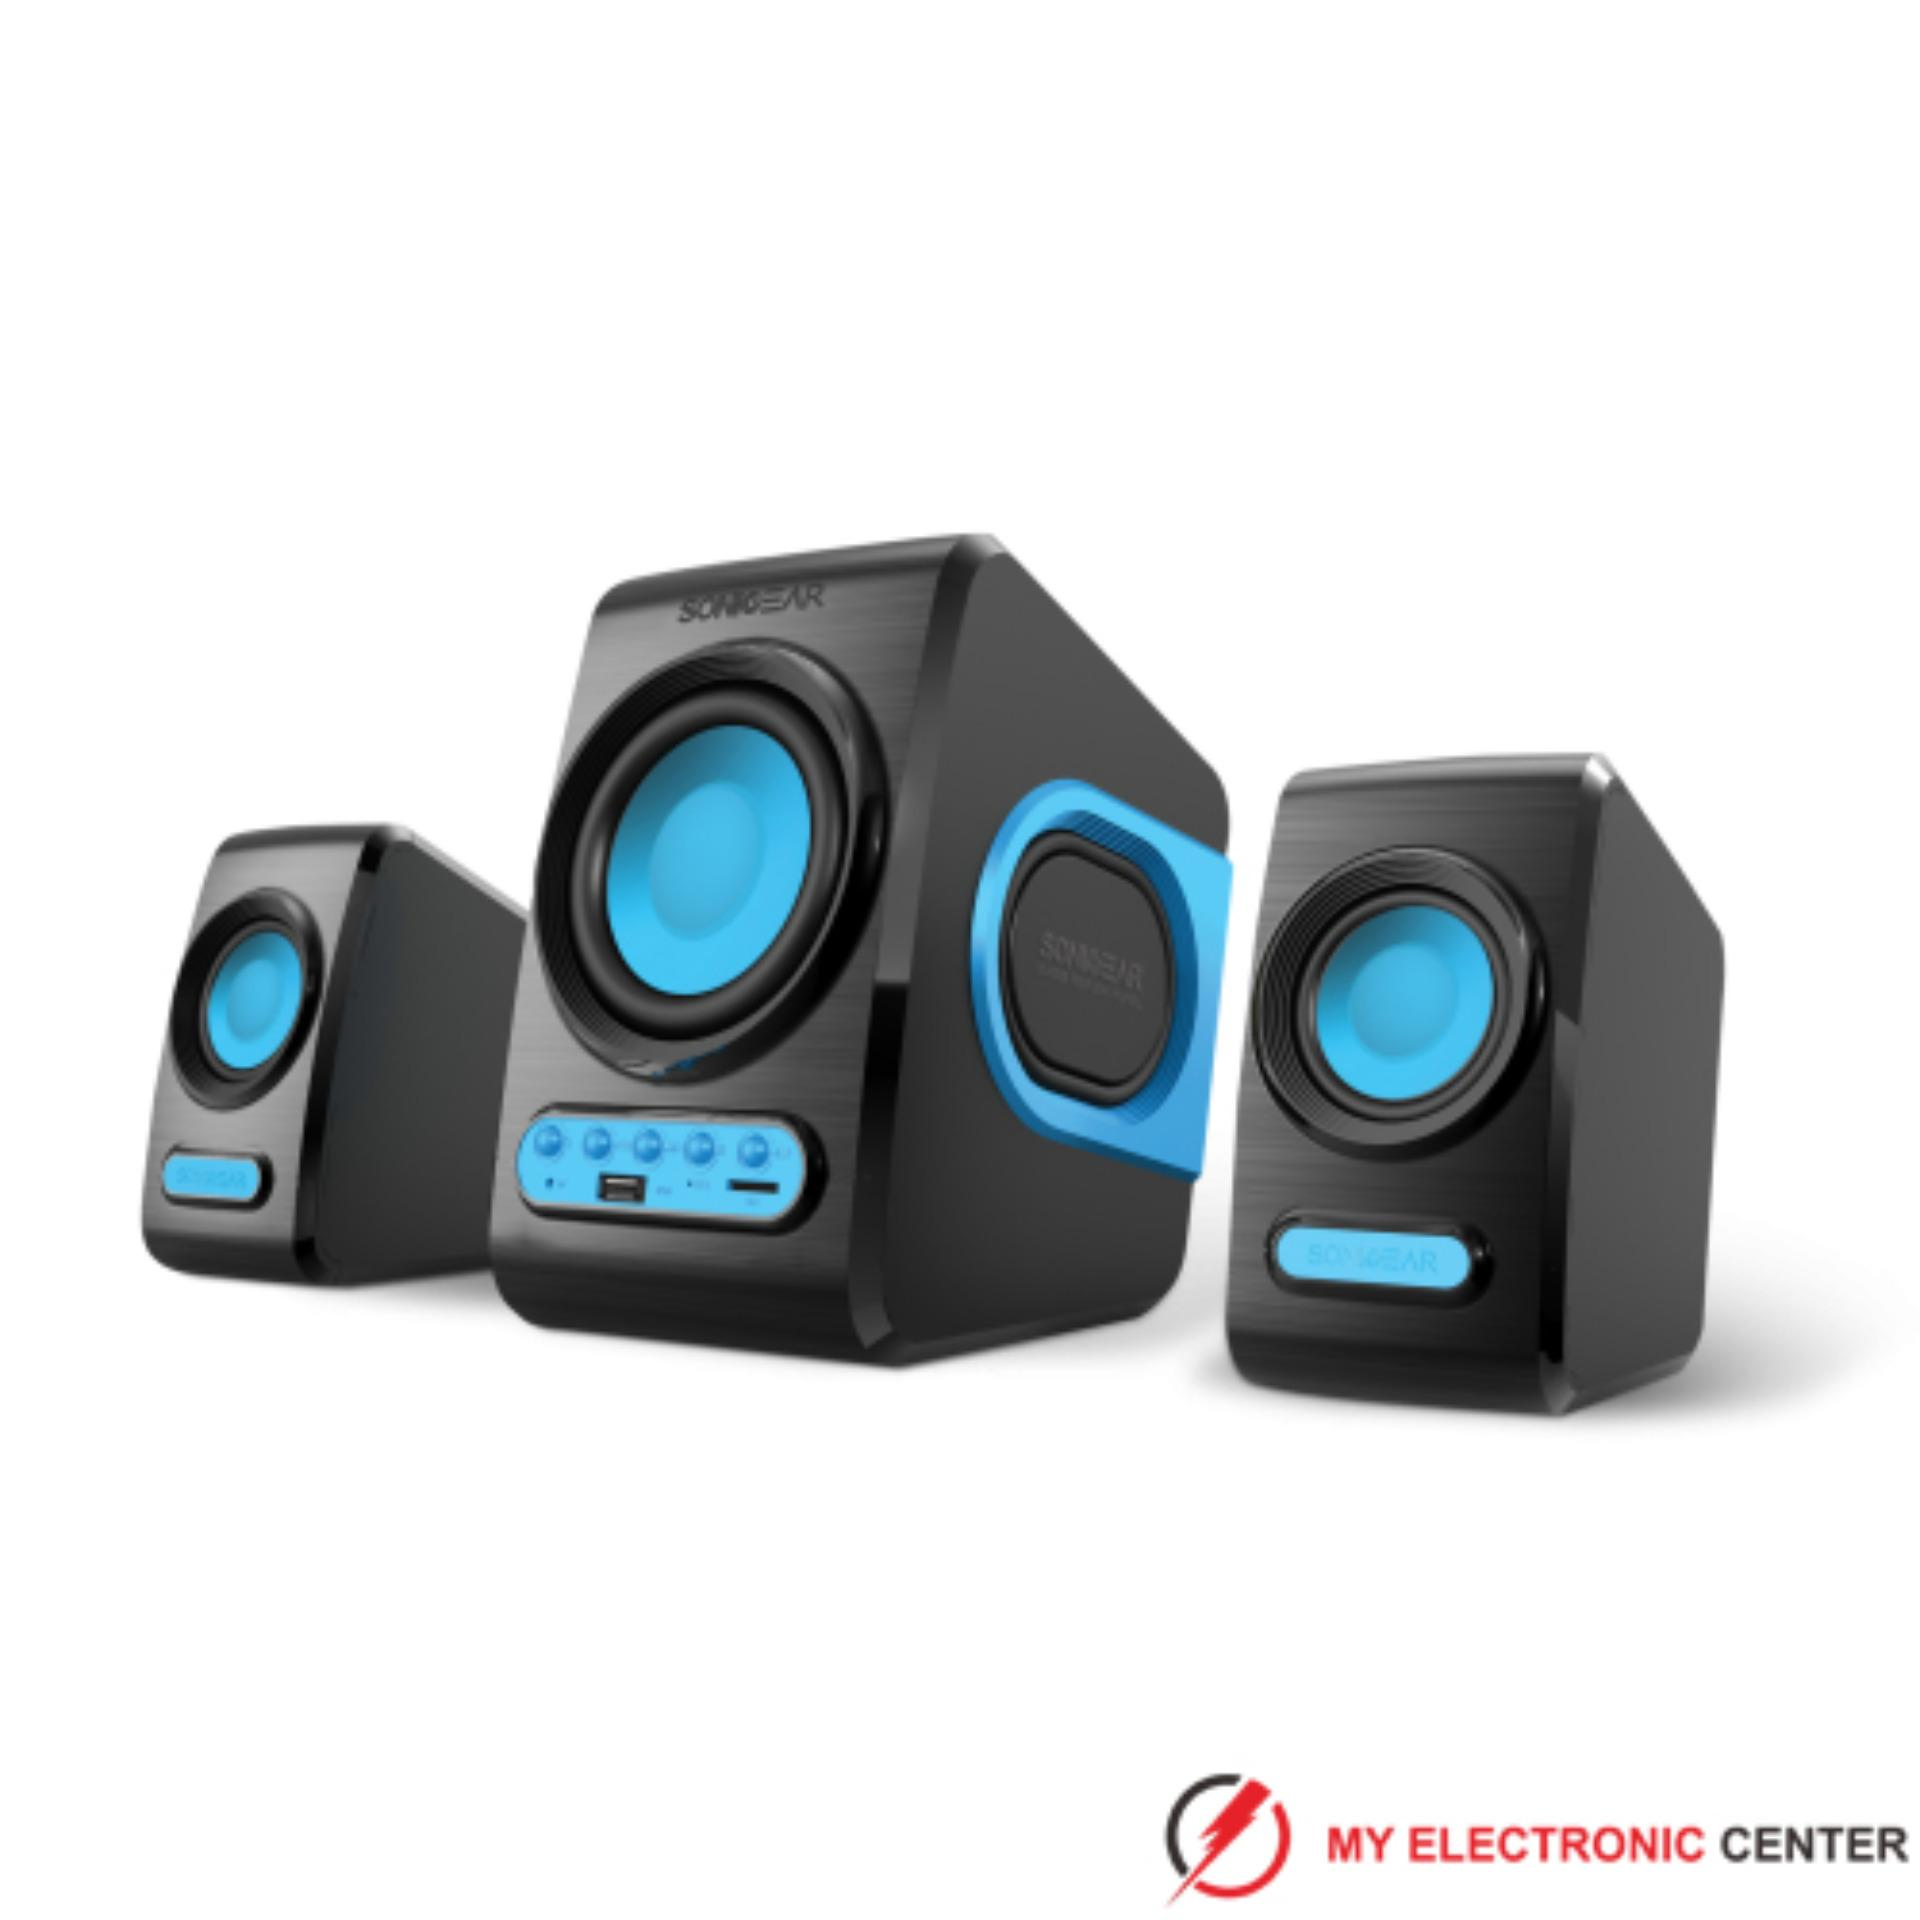 Harga Speaker Sonicgear Quatro V 2 1 Full Bass Blue Speaker Komputer Pc Laptop Notebook Seken